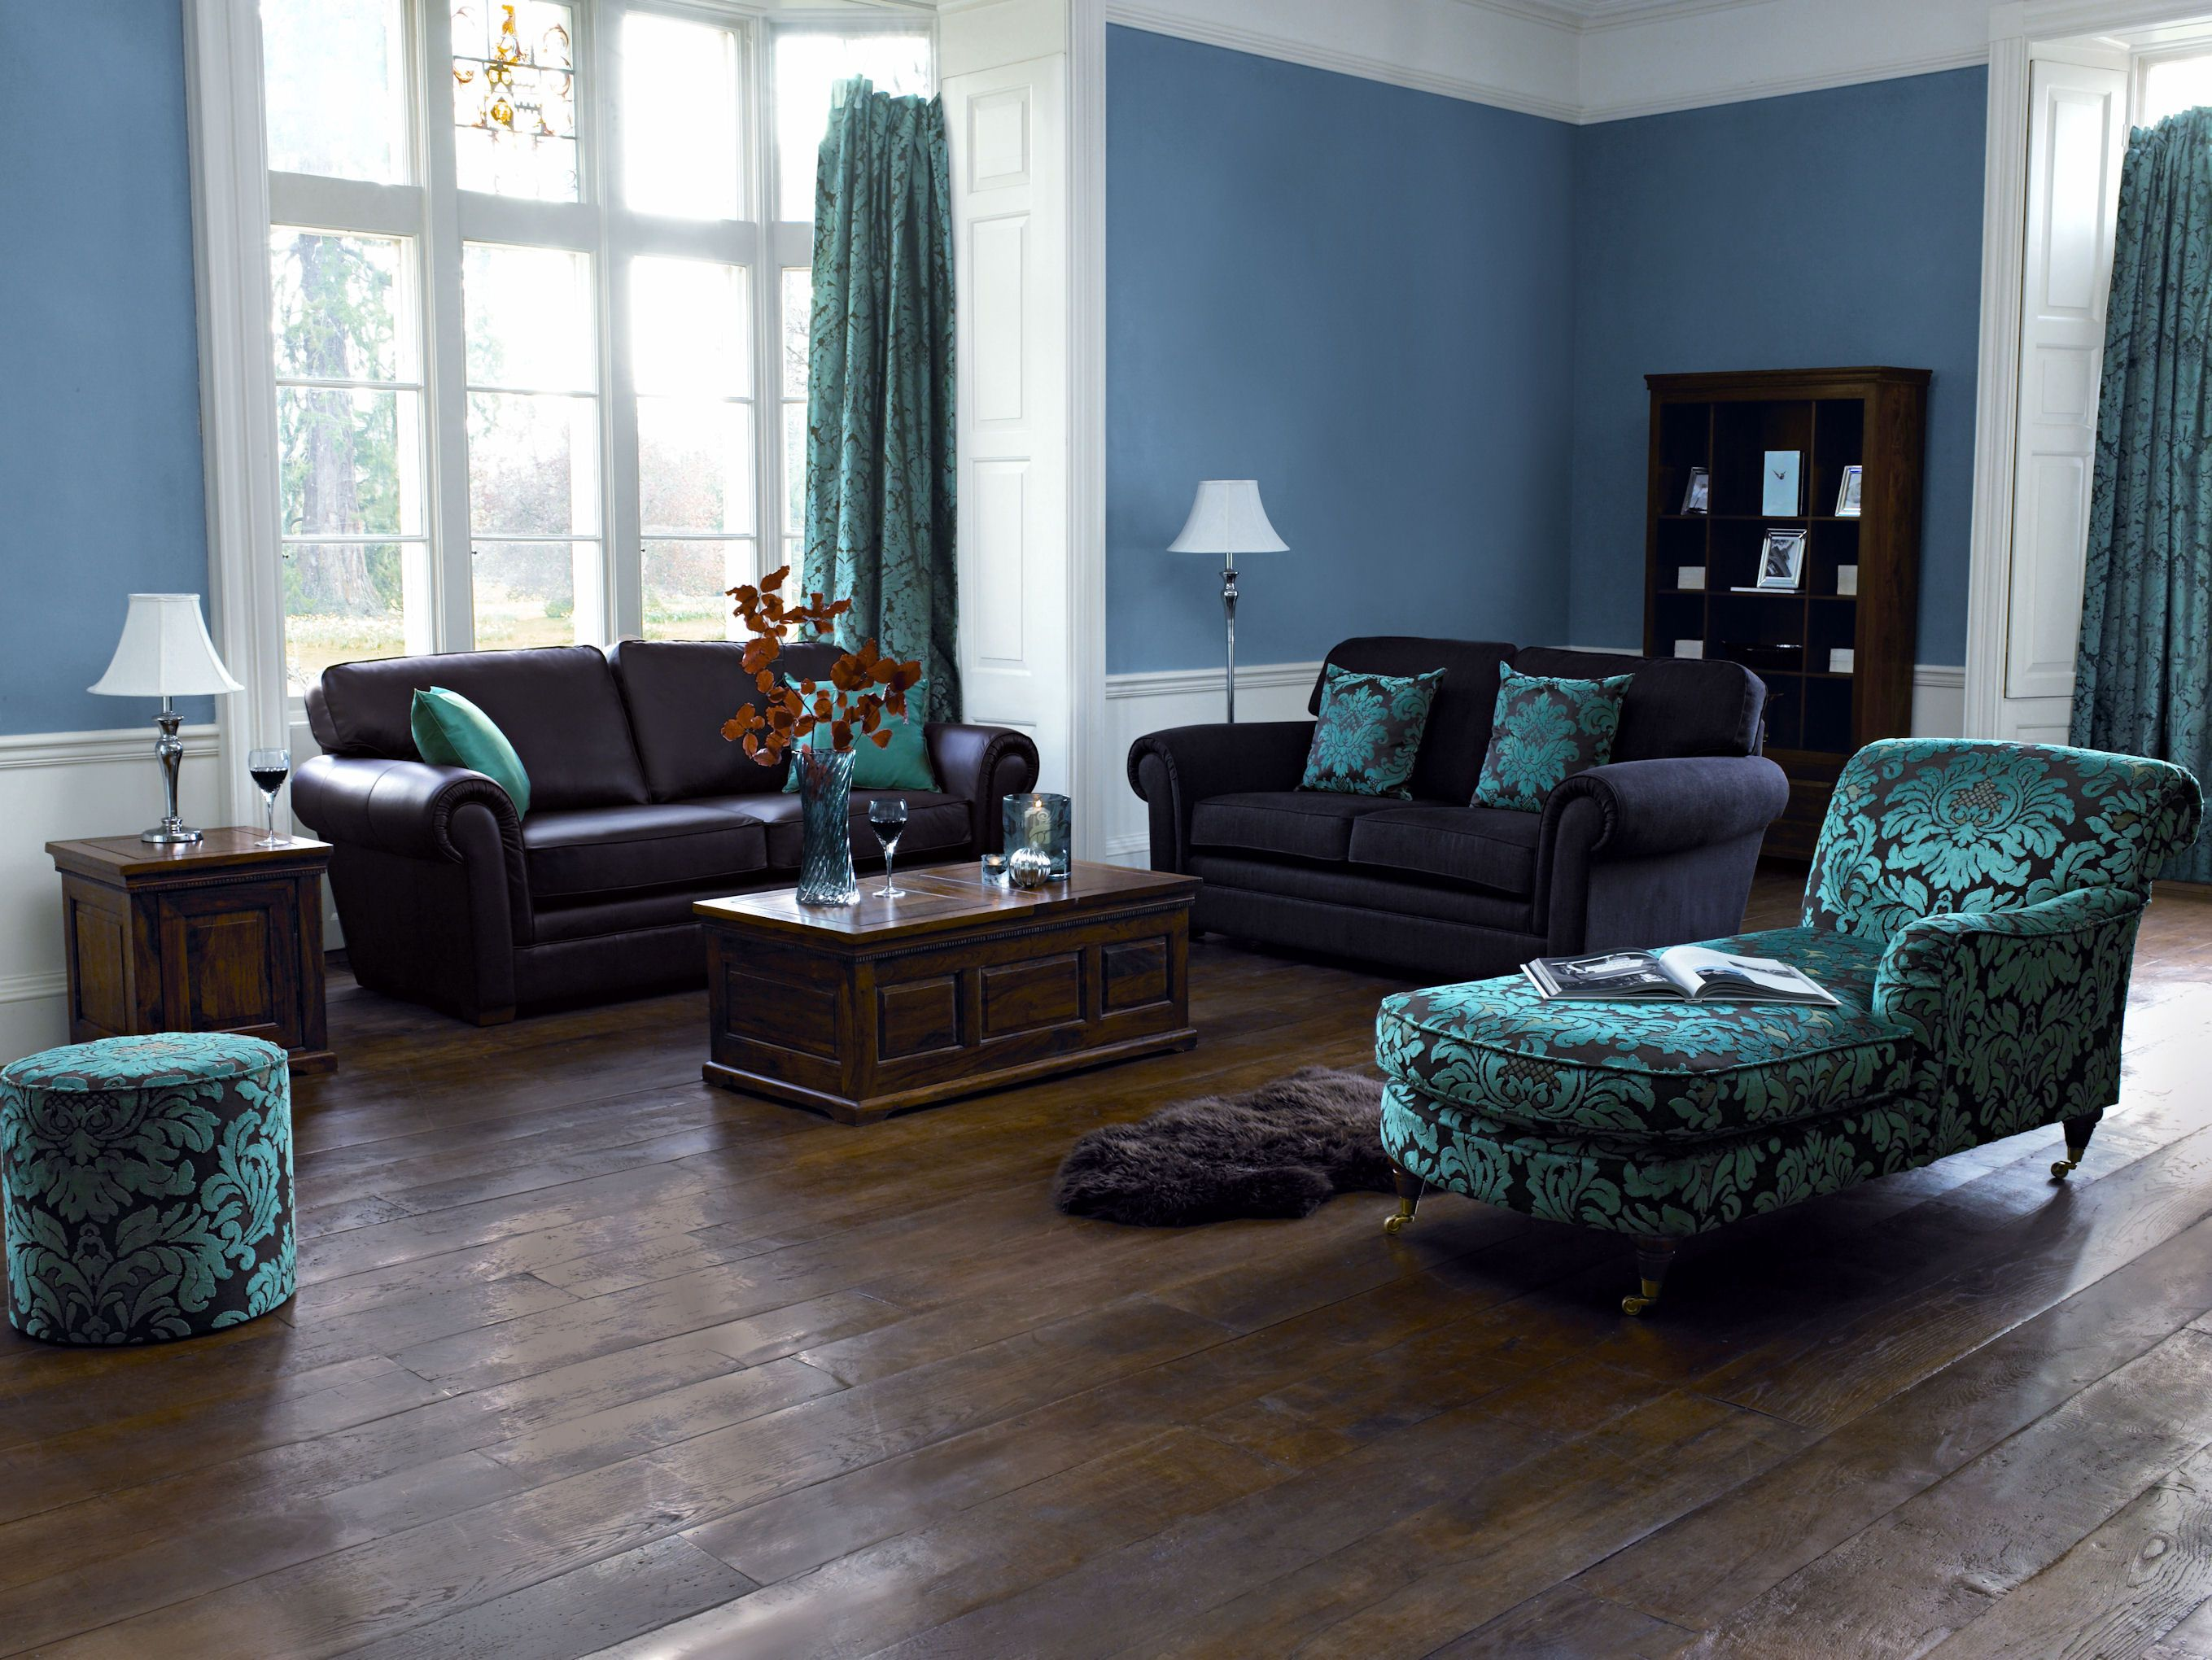 choosing colors for your home | brown and blue living room